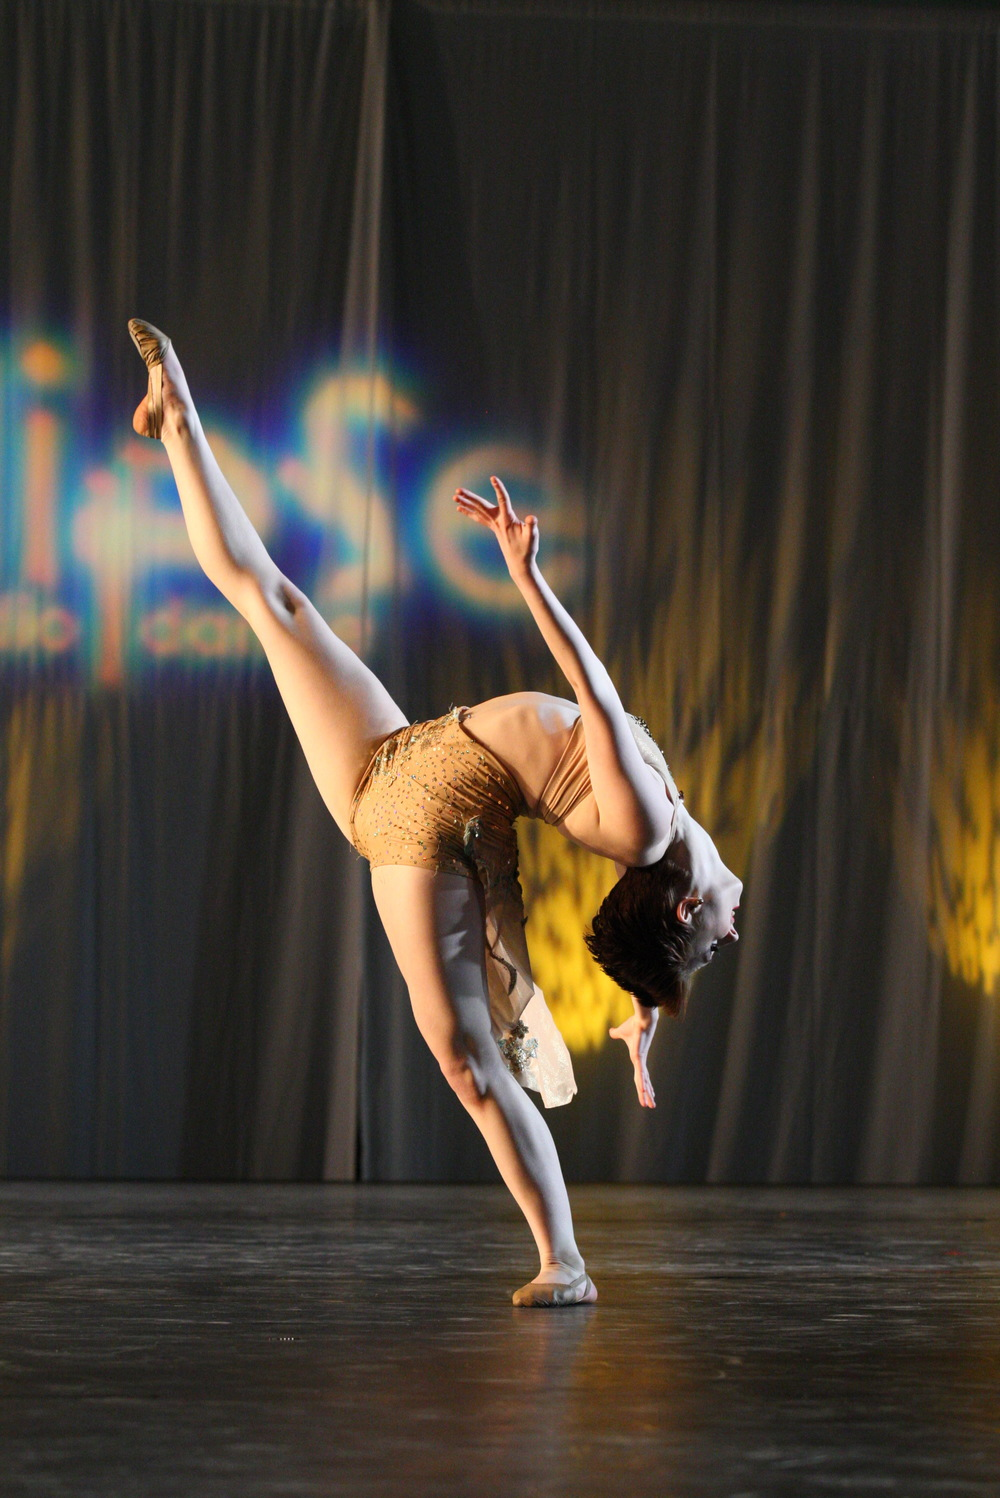 2013 - Lexi Johnson from Kincade Dance Industries